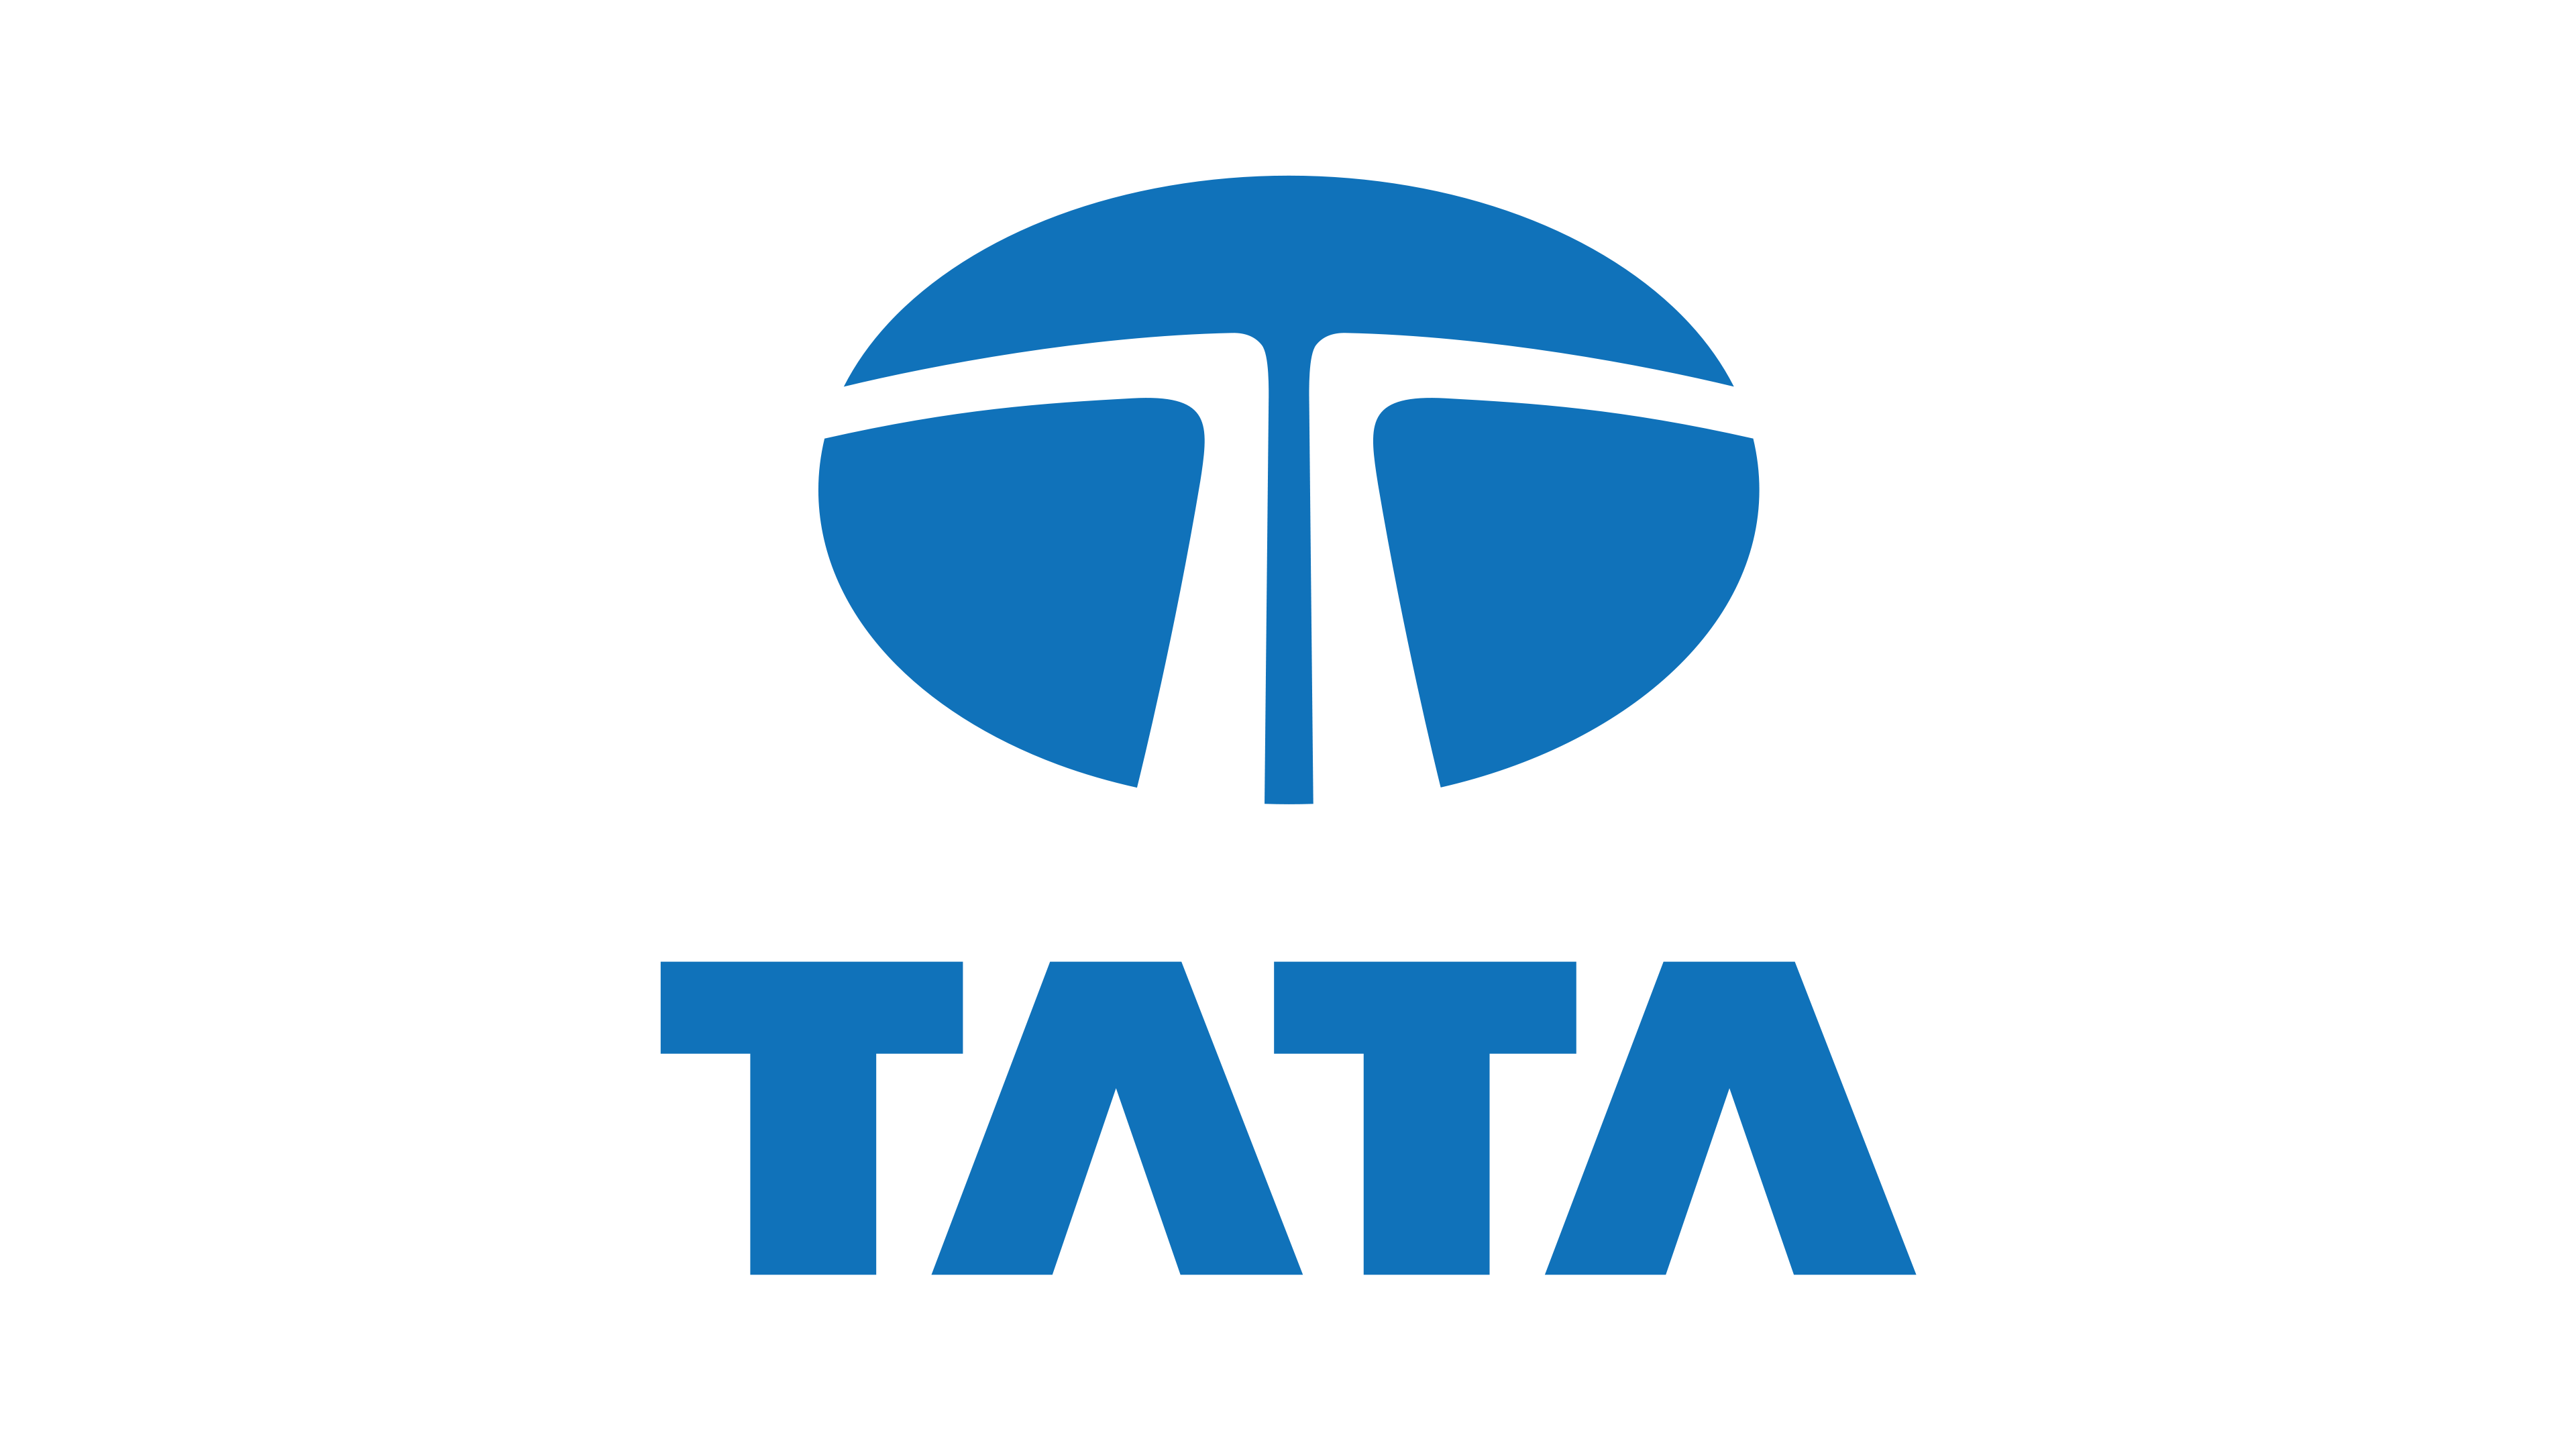 Tata Logo, HD Png, Meaning, Information.